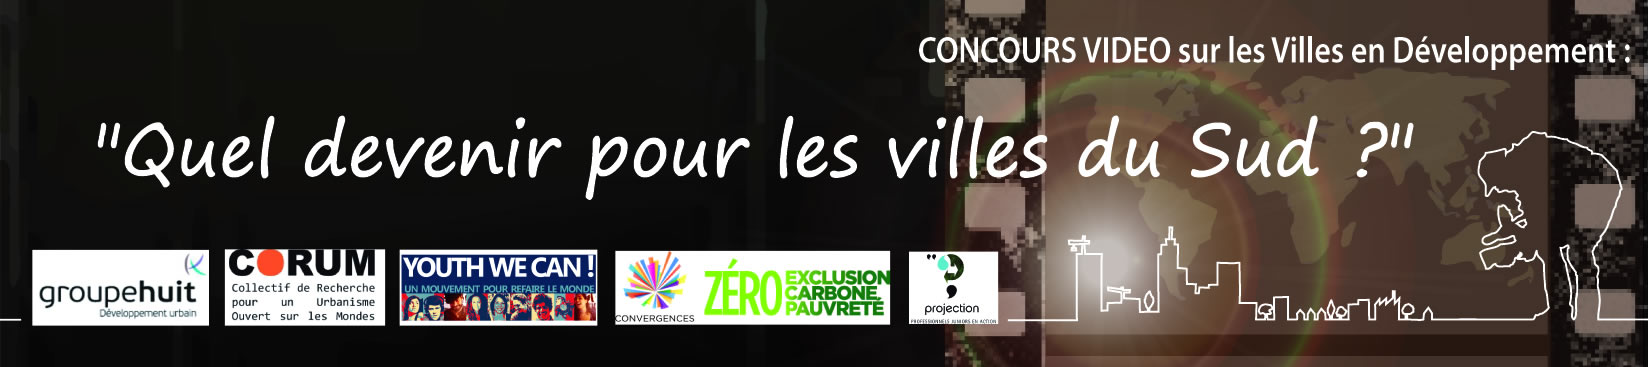 170220 concours video 2017